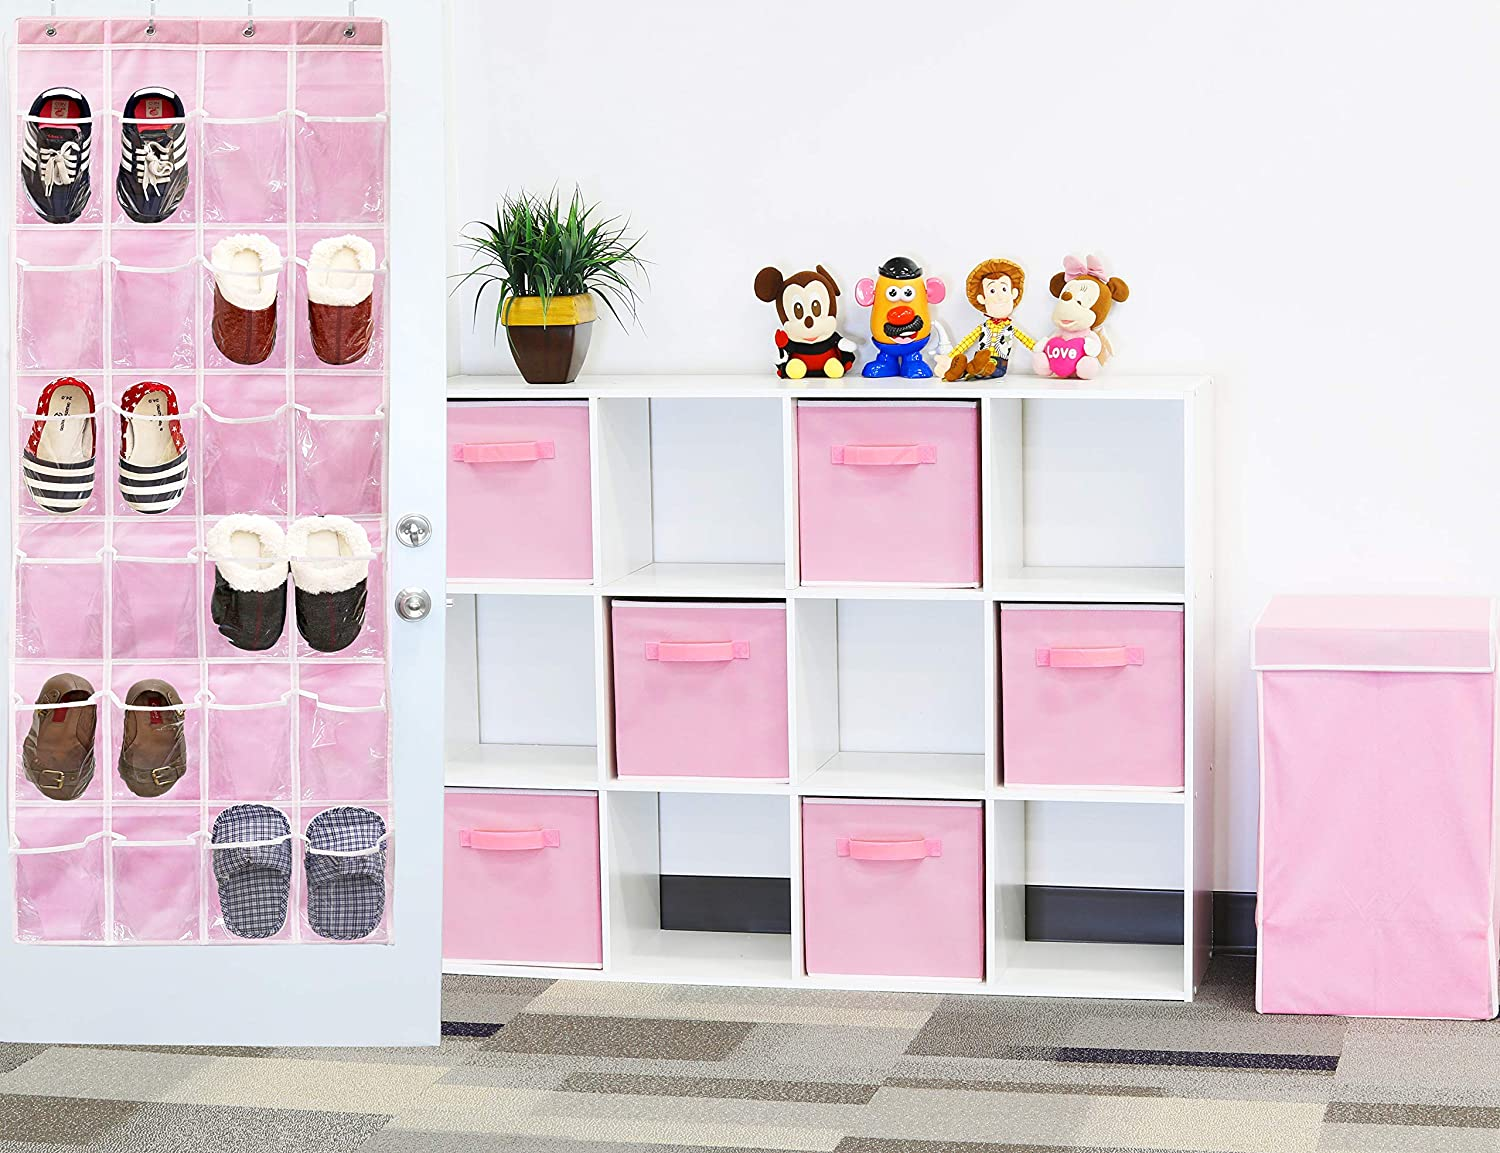 Simple Houseware SHW Over The Door Shoes Organizer Pink